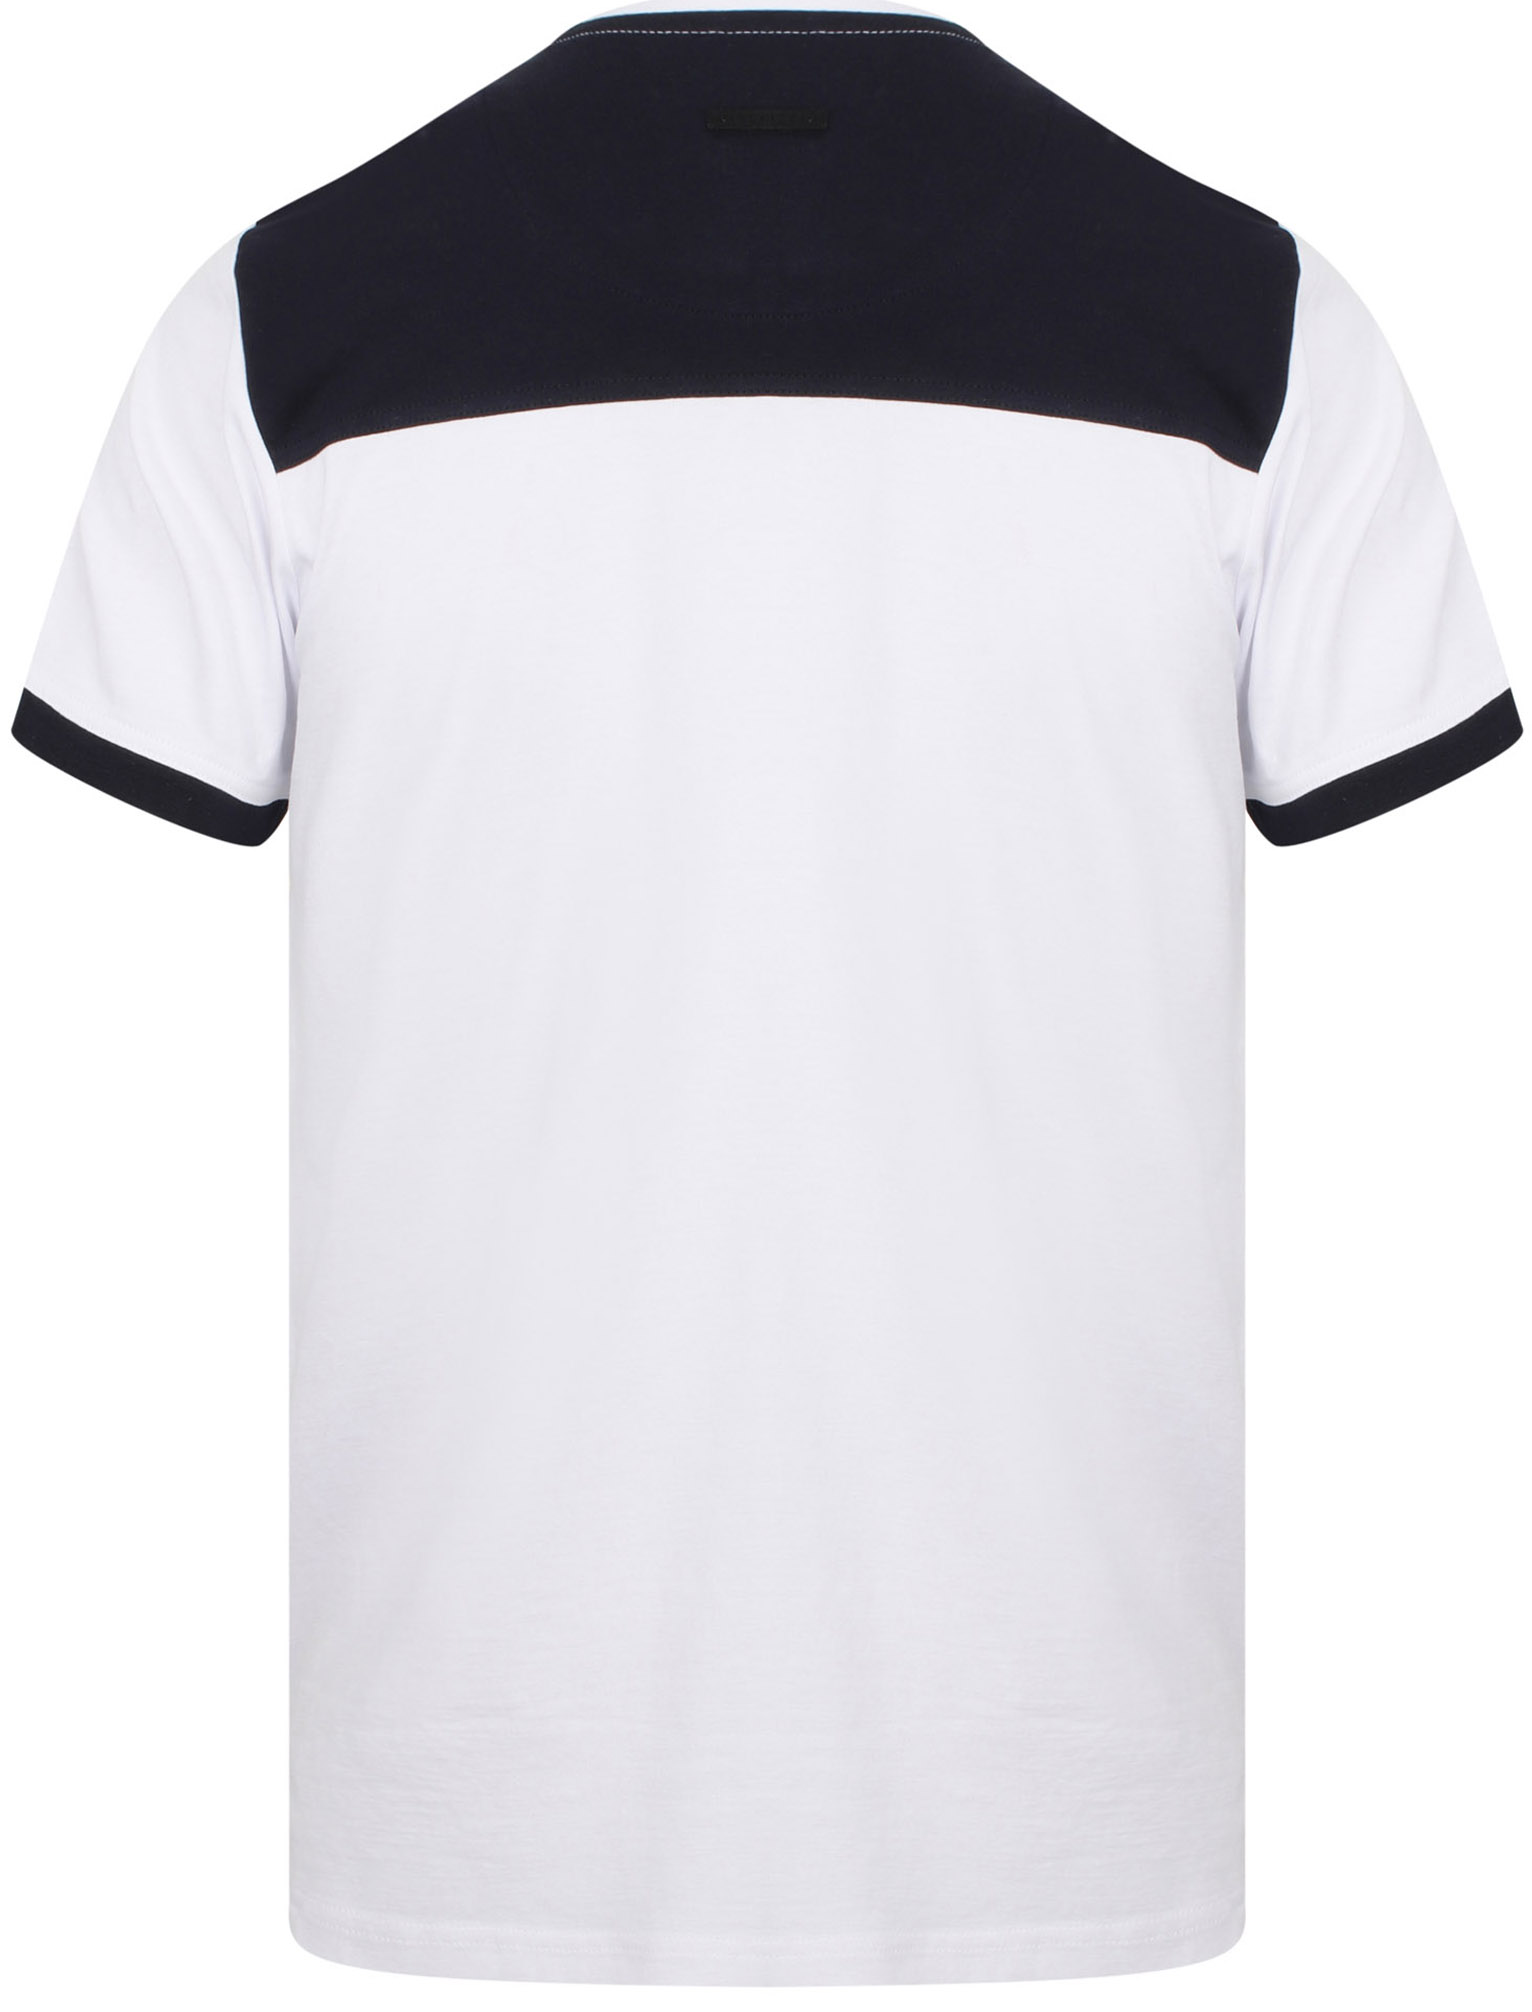 Dissident-men-039-s-Trilude-Y-Neck-T-Shirt-Henley-Top-Casual-Tee-Chest-Pocket-Cotton thumbnail 8